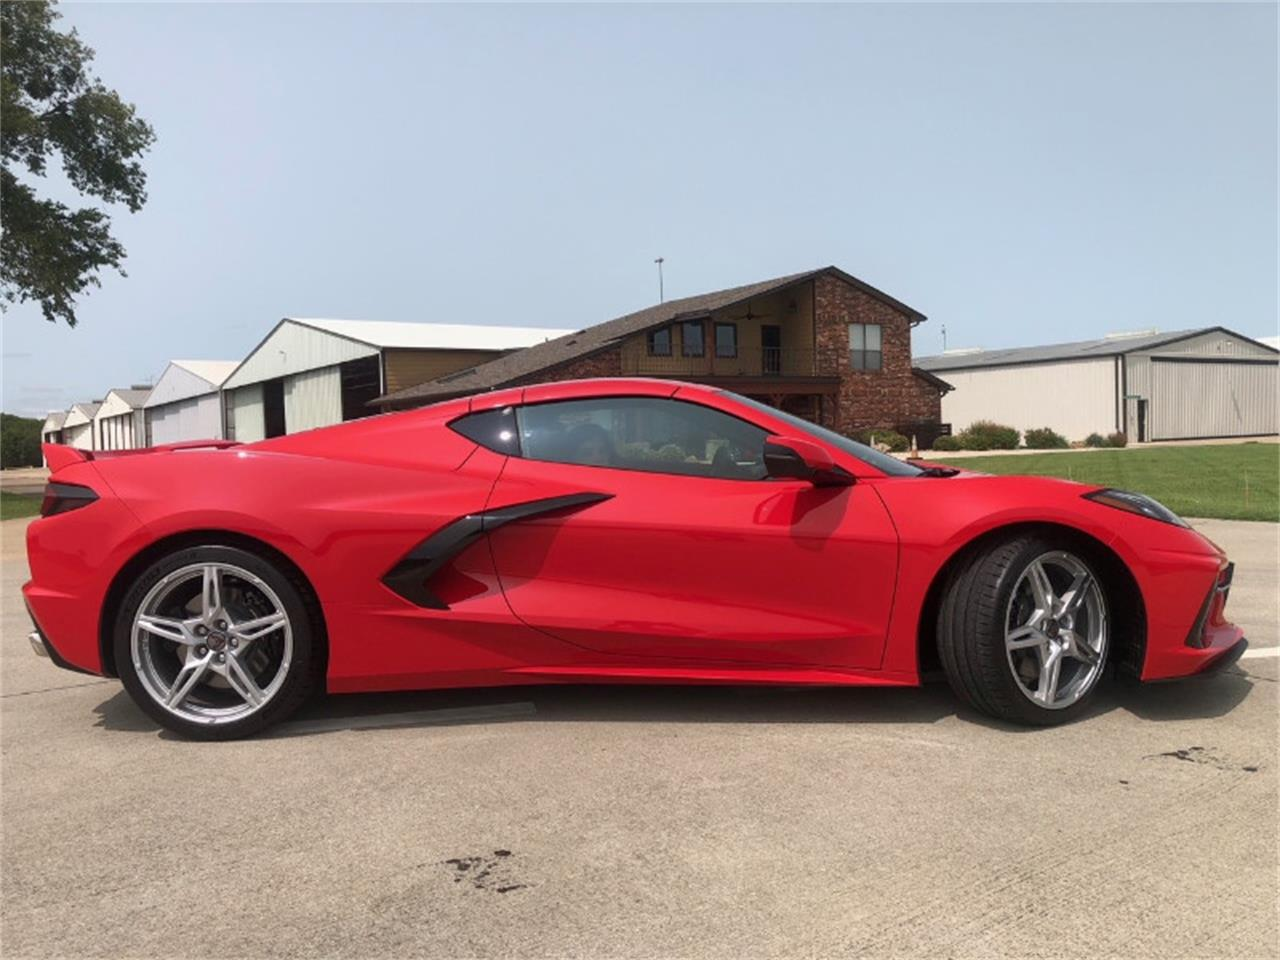 2020 Chevrolet Corvette (CC-1414986) for sale in Anaheim, California